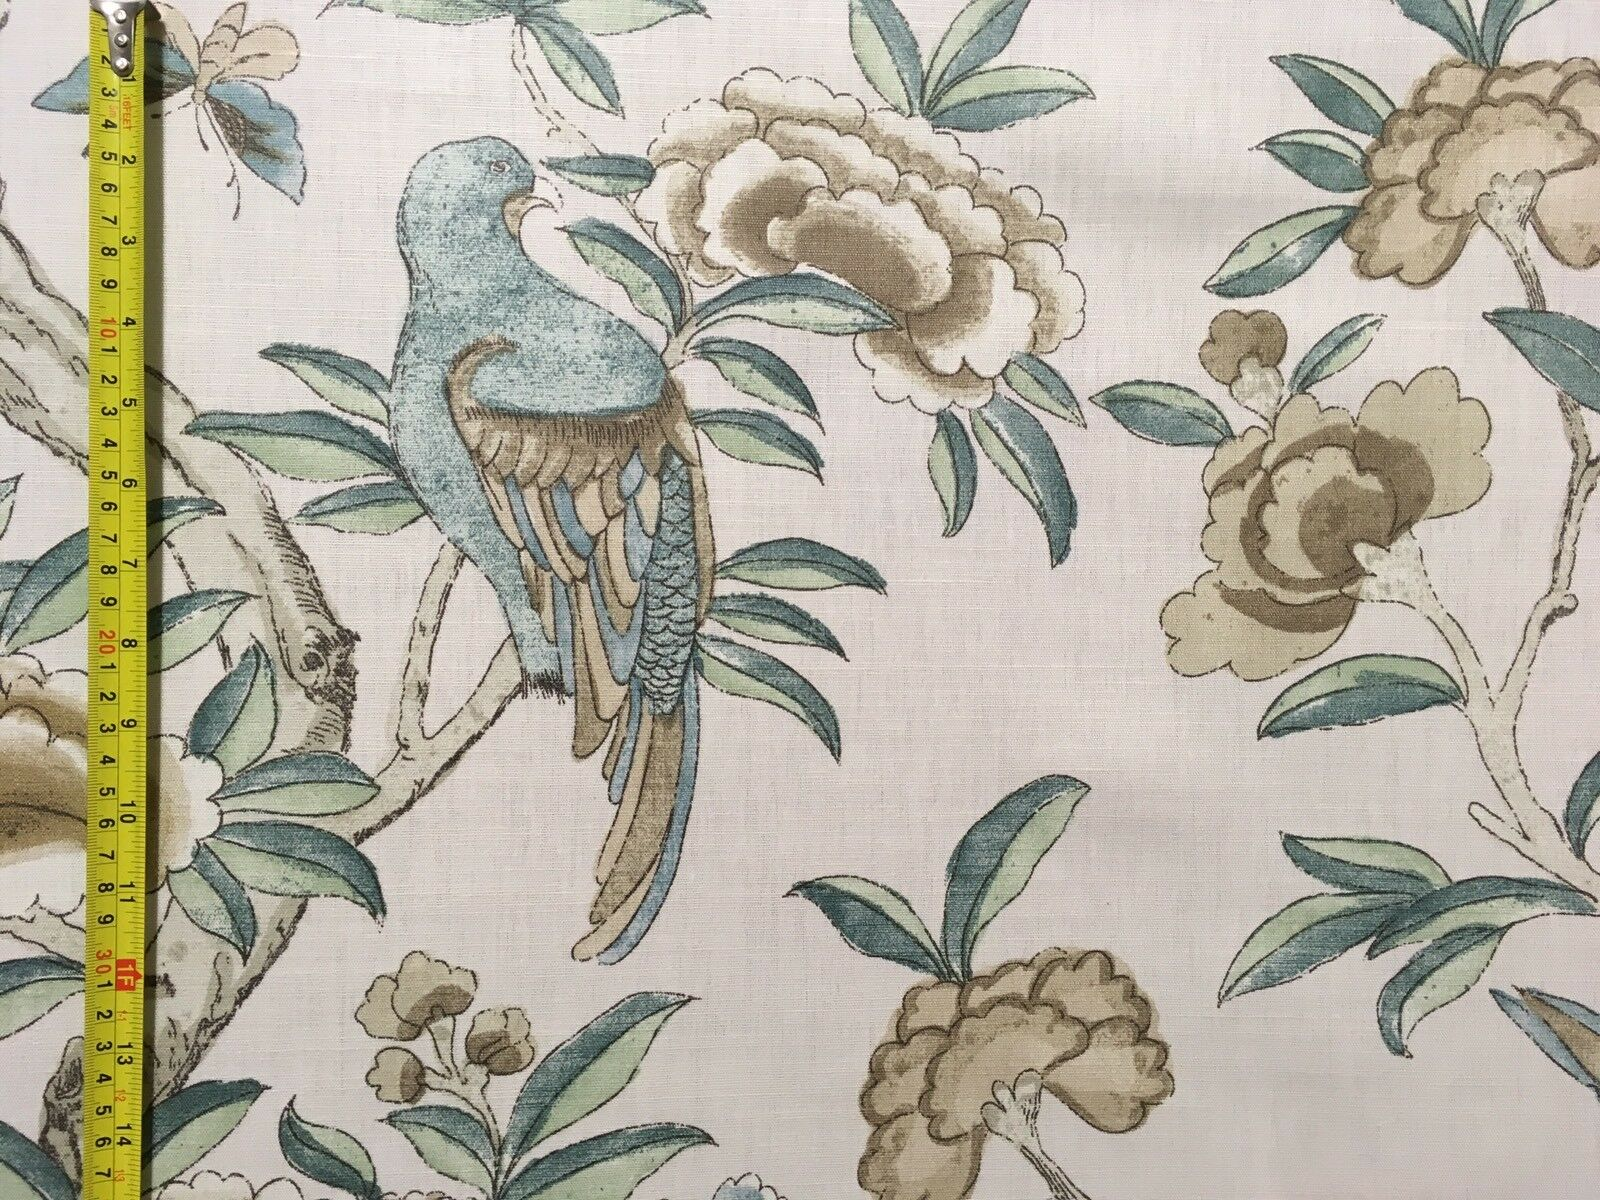 THIBAUT GISELLE GISELLE GISELLE CURTAIN CUSHION BLIND FABRIC LINEN COTTON BIRDS FLORAL 2.6m 3f492c